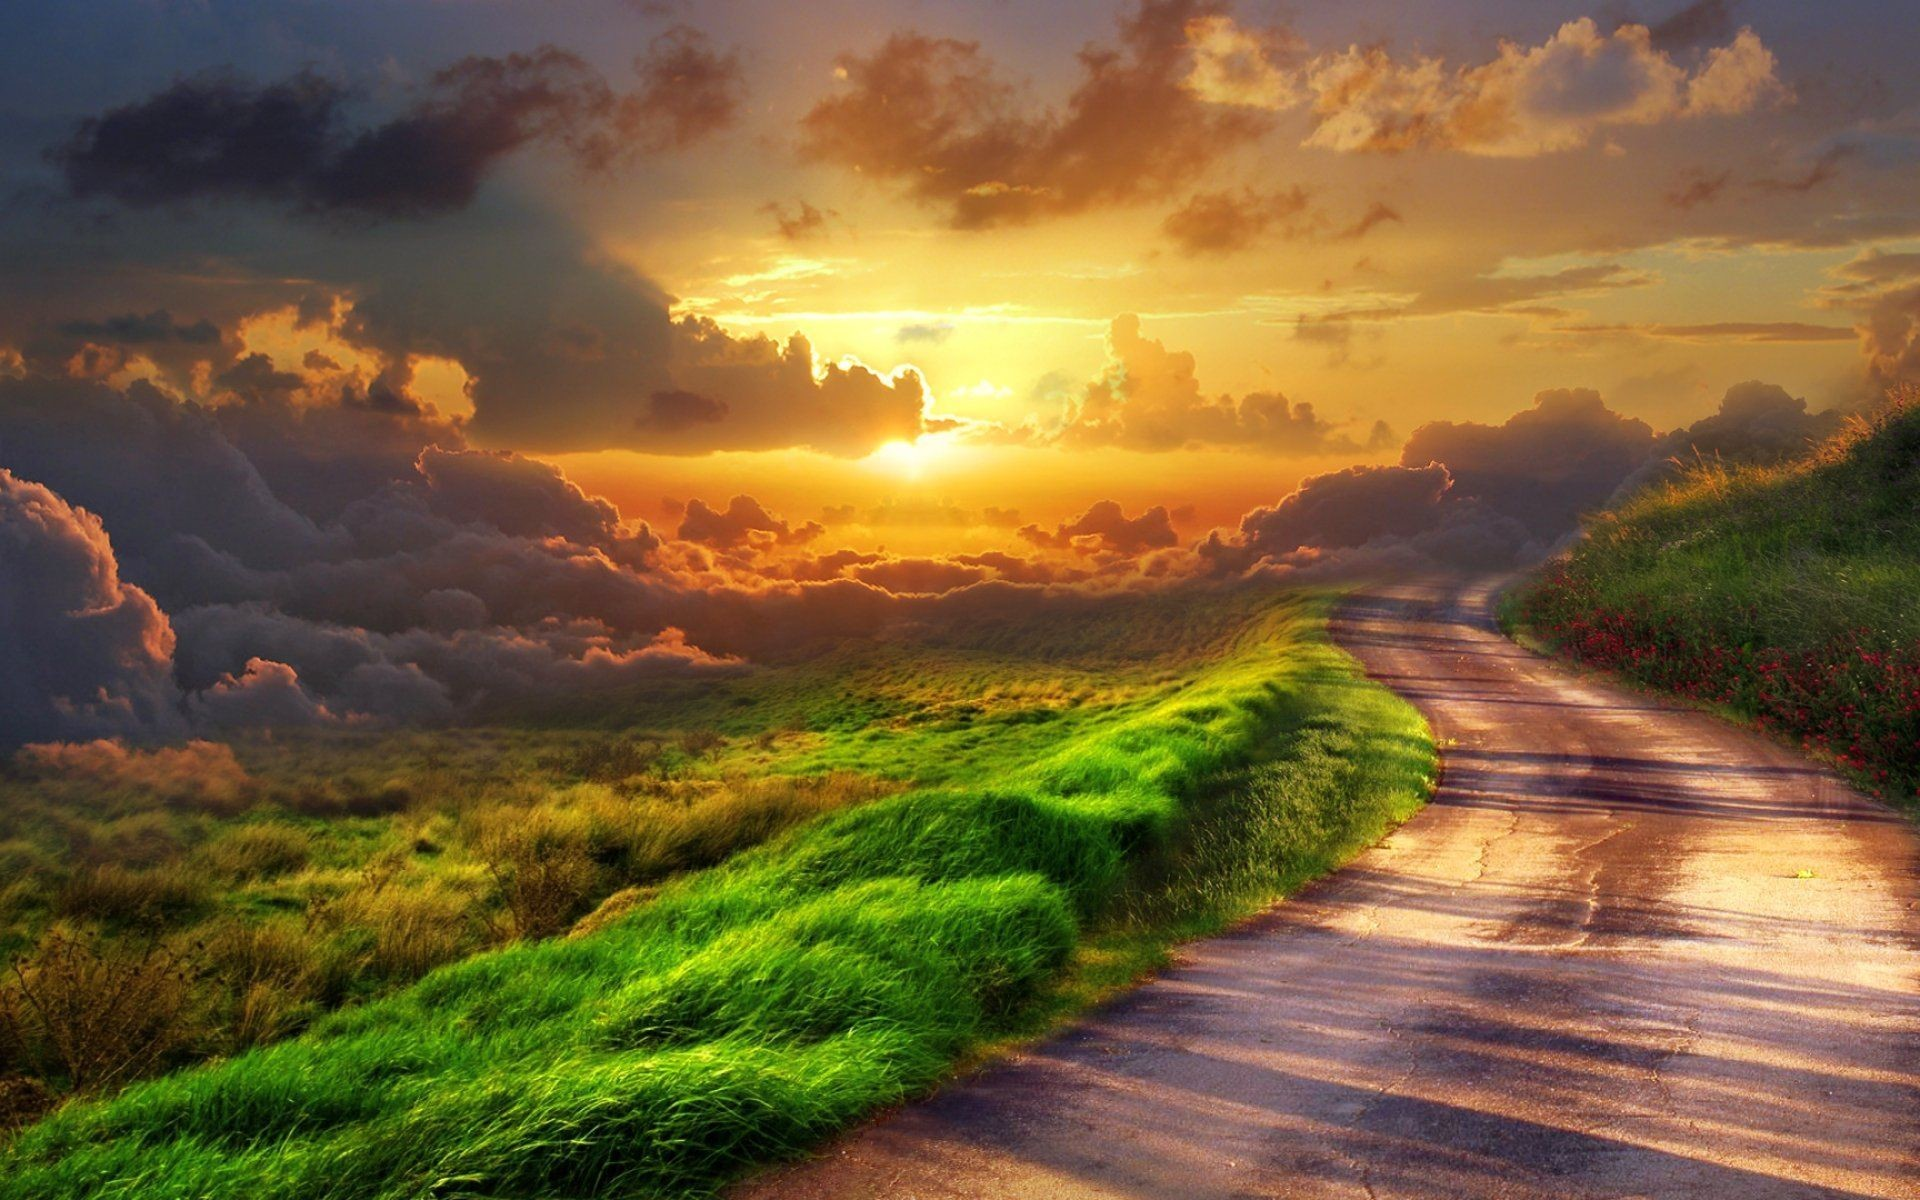 Download Stairway To Heaven Wallpapers In HD